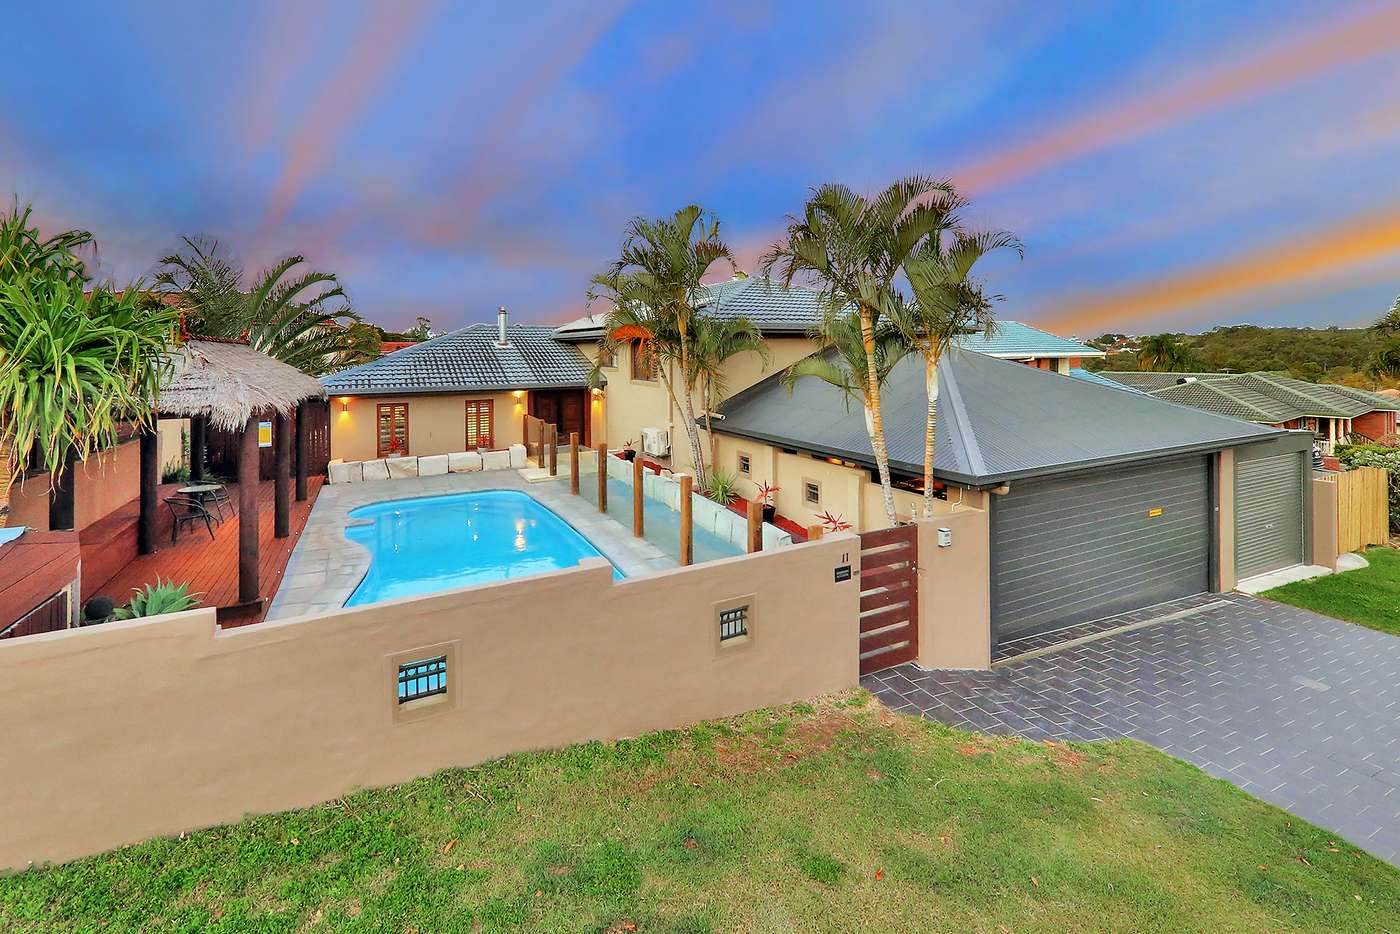 Main view of Homely house listing, 11 Brigantine Place, Sunnybank Hills QLD 4109